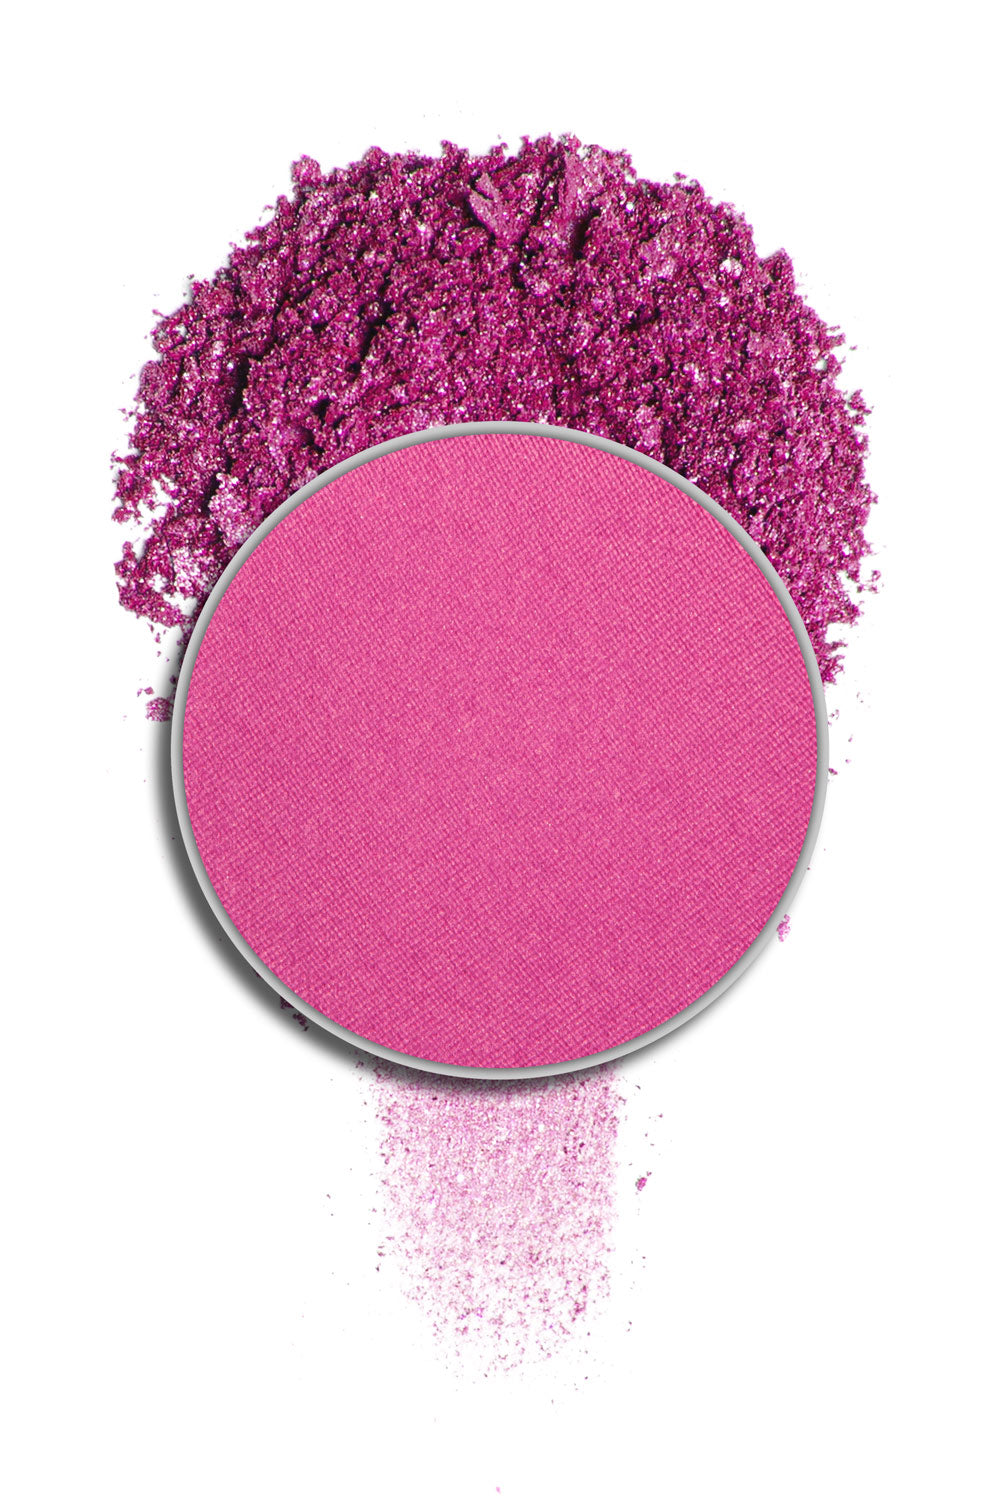 Raspberry Sorbet - Type 4 Eyeshadow Pan